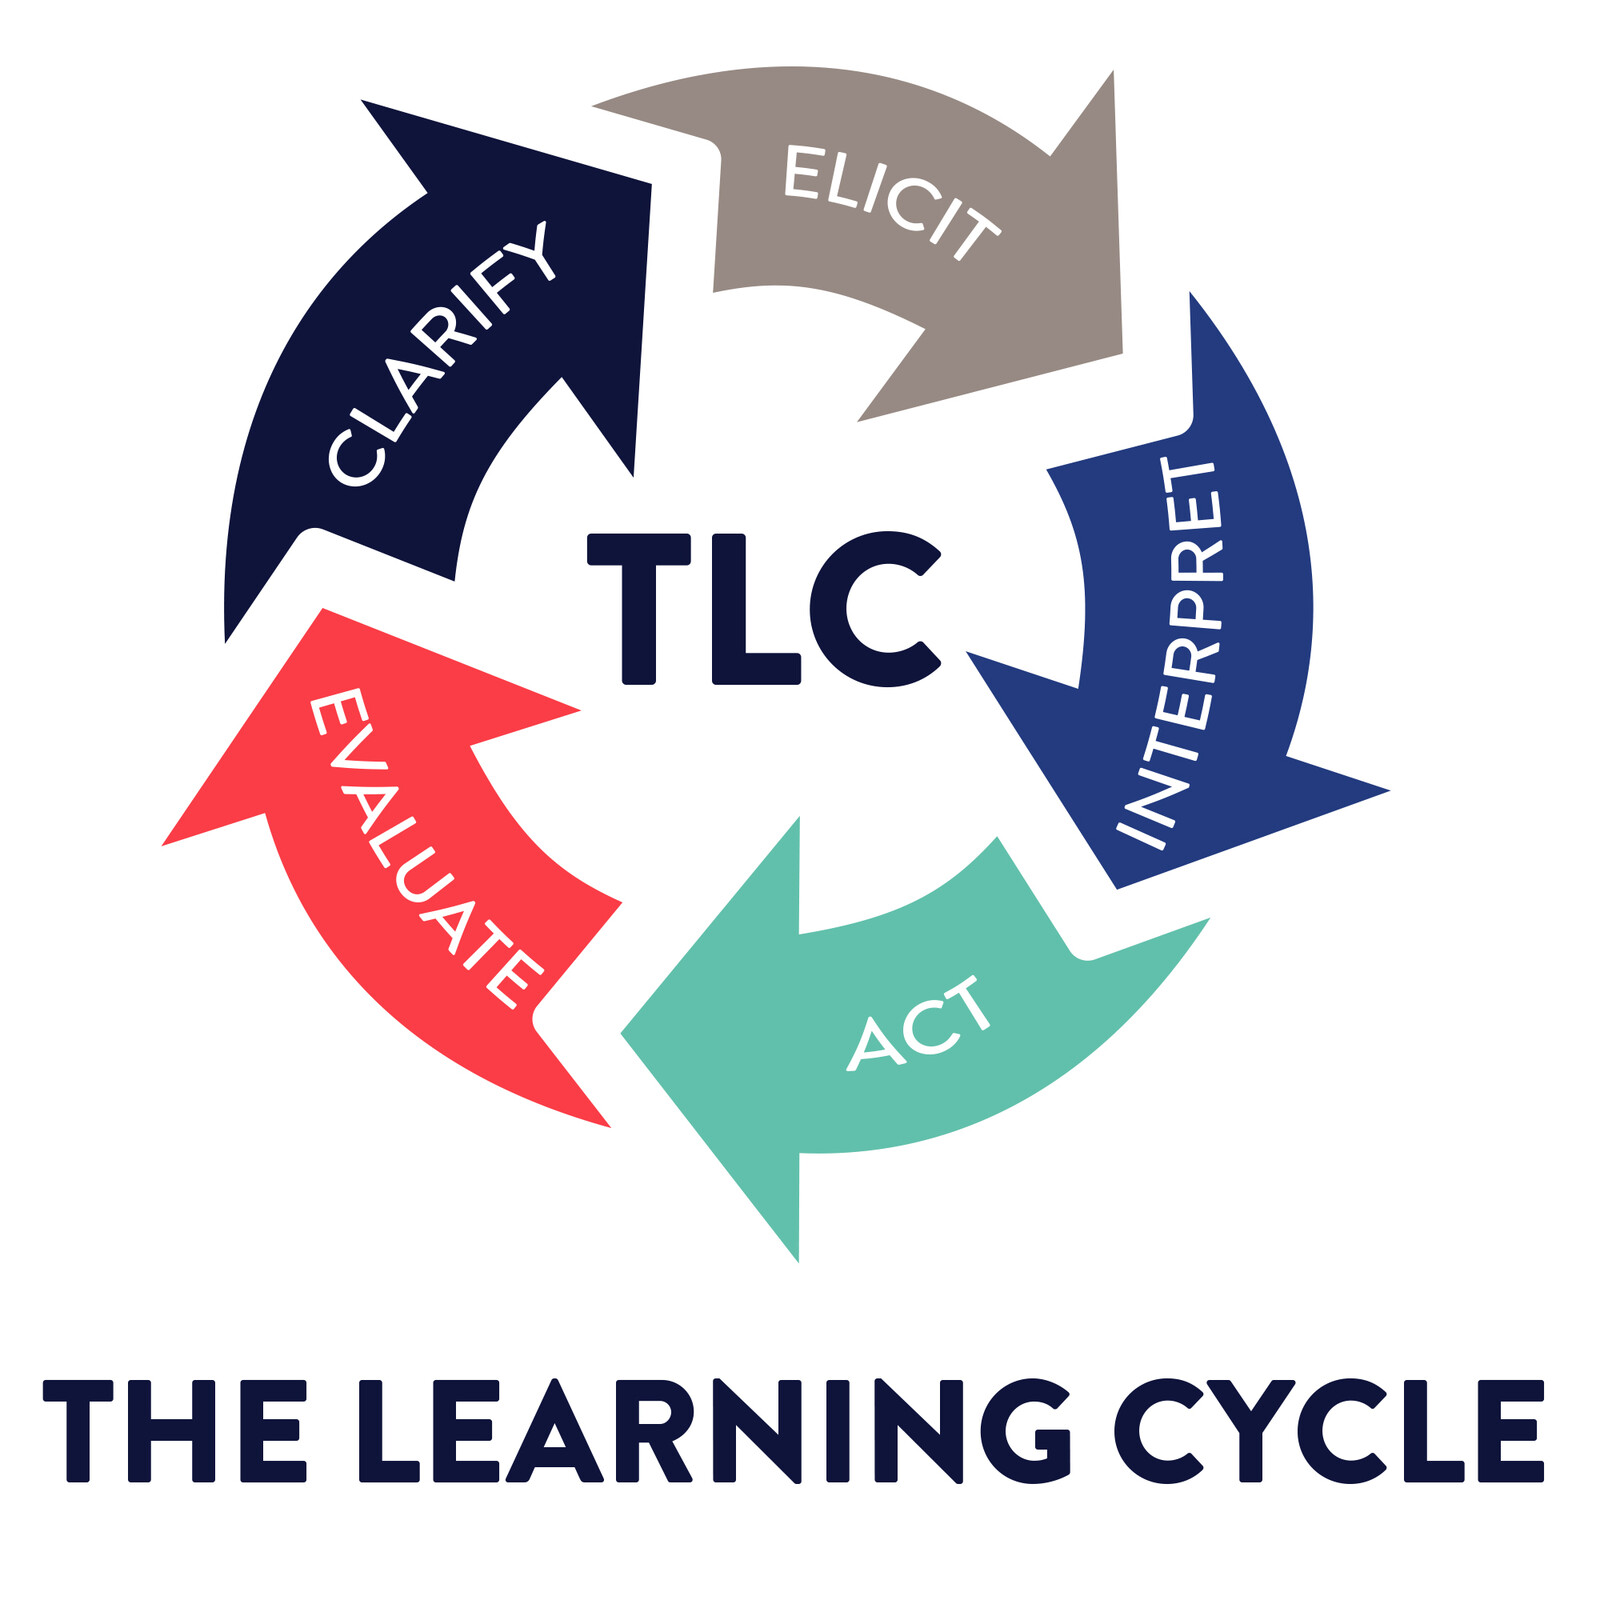 The Learning Cycle Logo